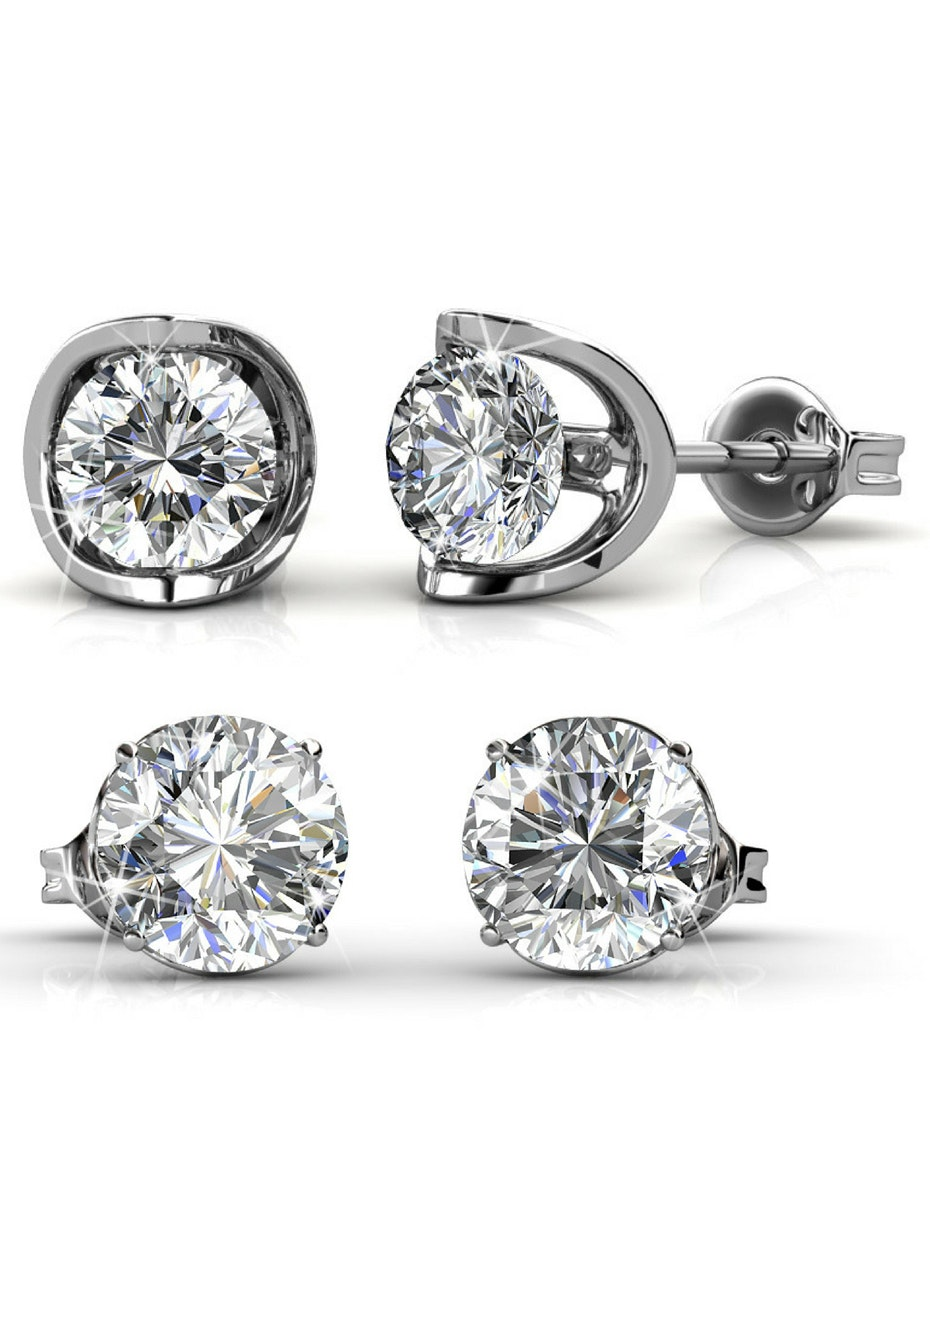 2 Pair Stud Earrings Set Embellished with Crystals from Swarovski